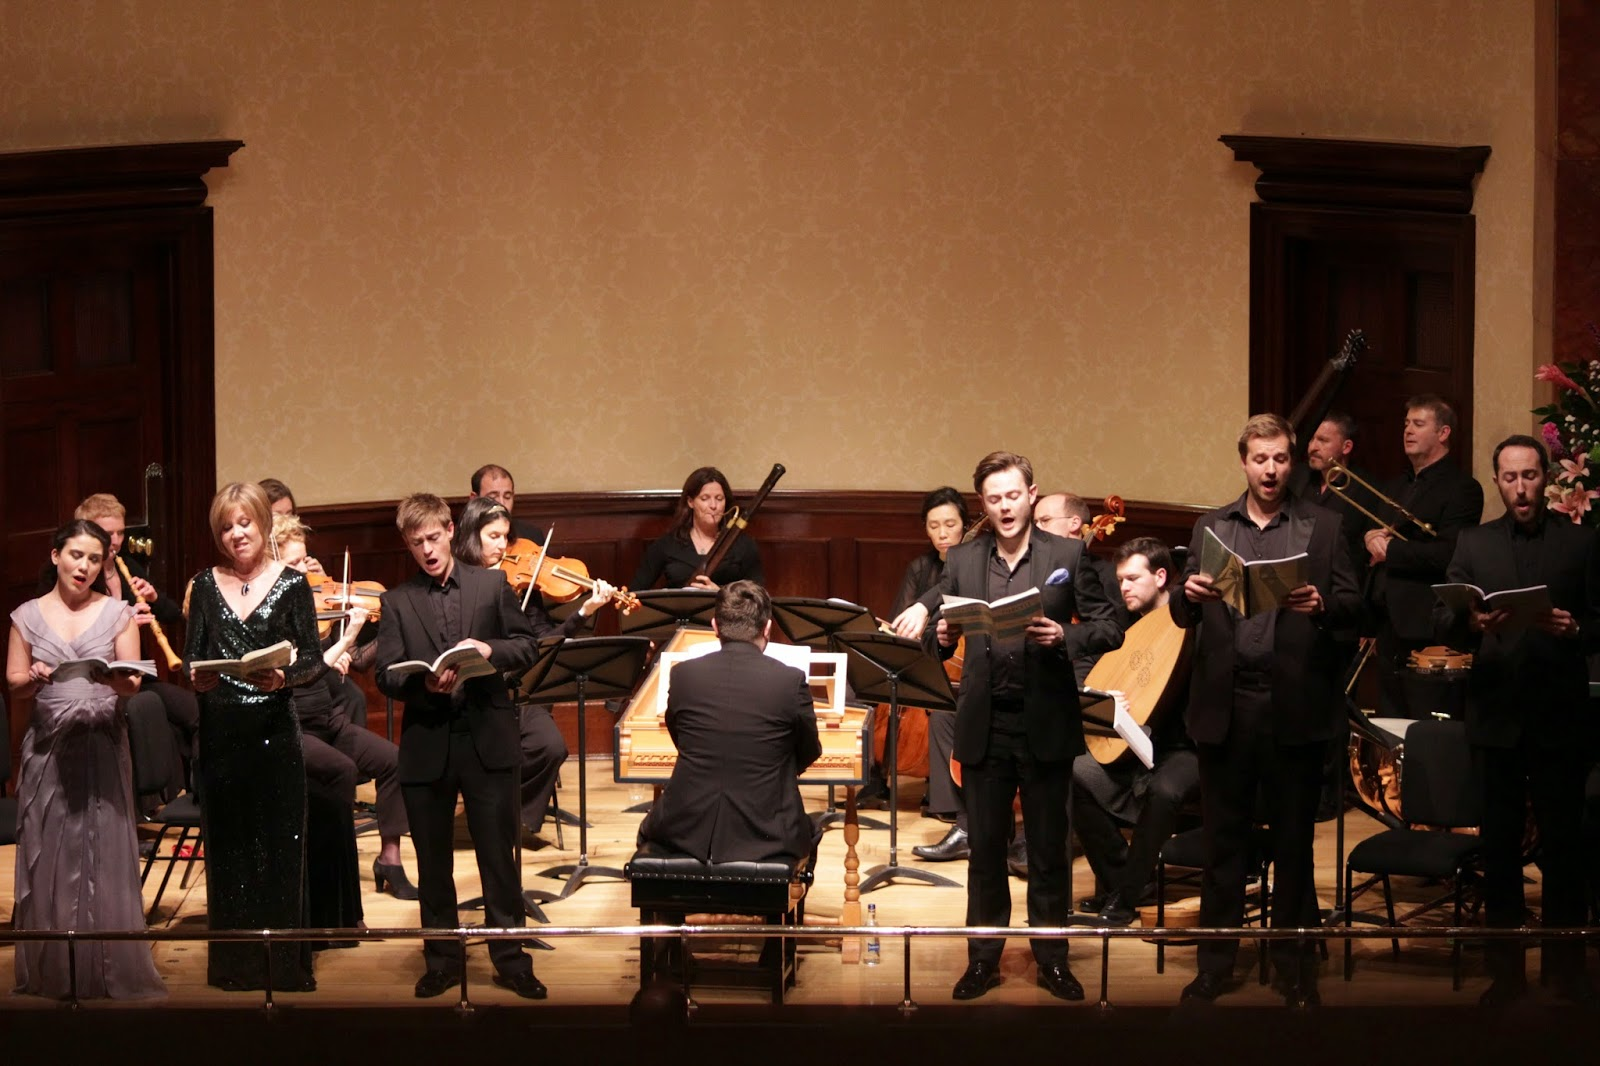 Early Opera Company perform Purcell 'King Arthur' at Wigmore Hall. Photo credit Charlotte Burke